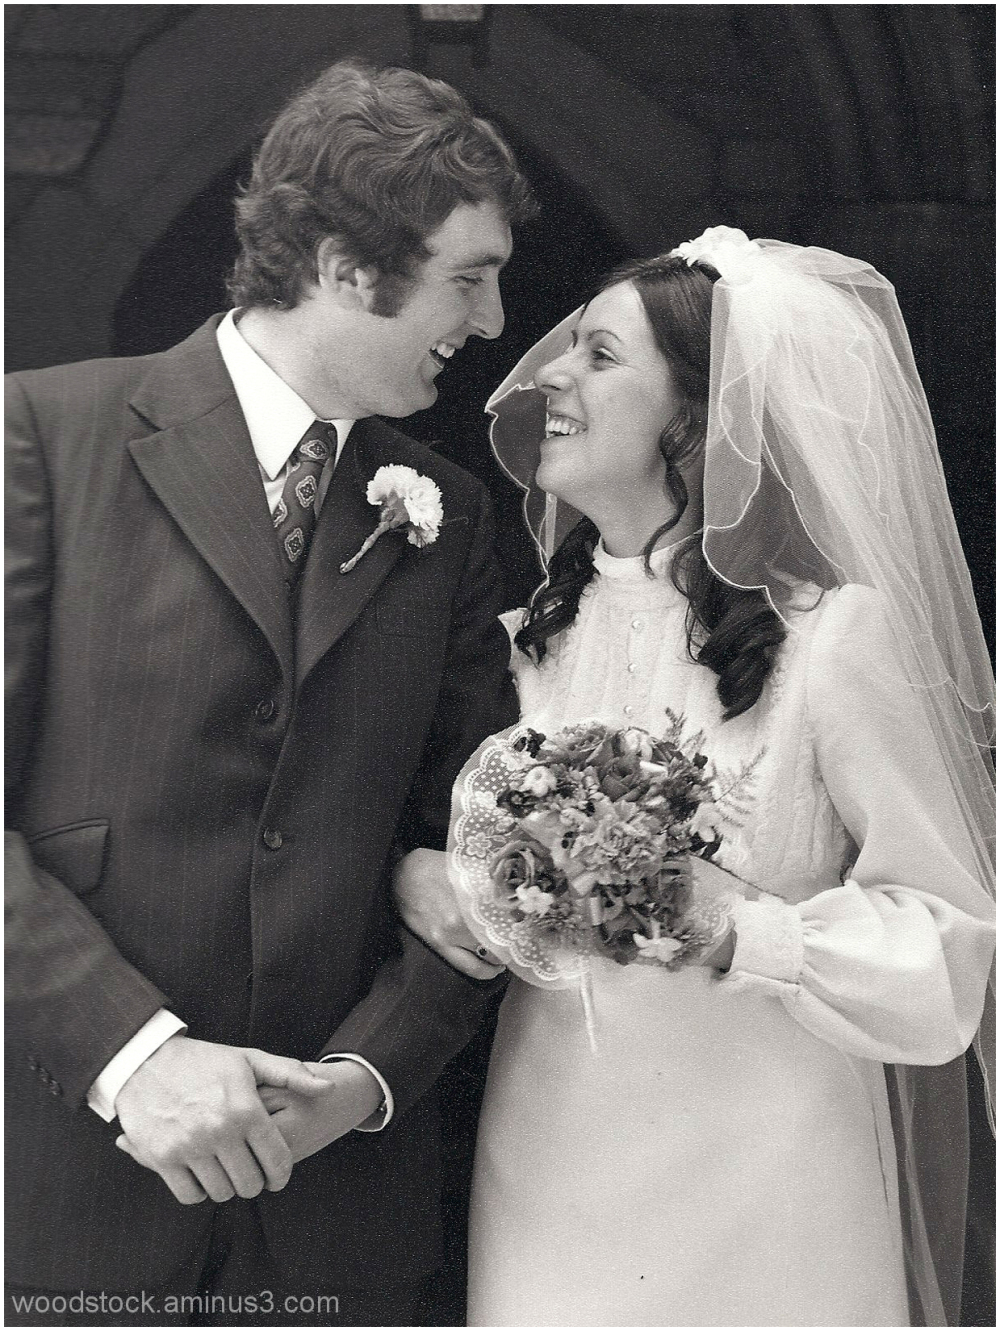 Ruby Wedding Anniversary Today